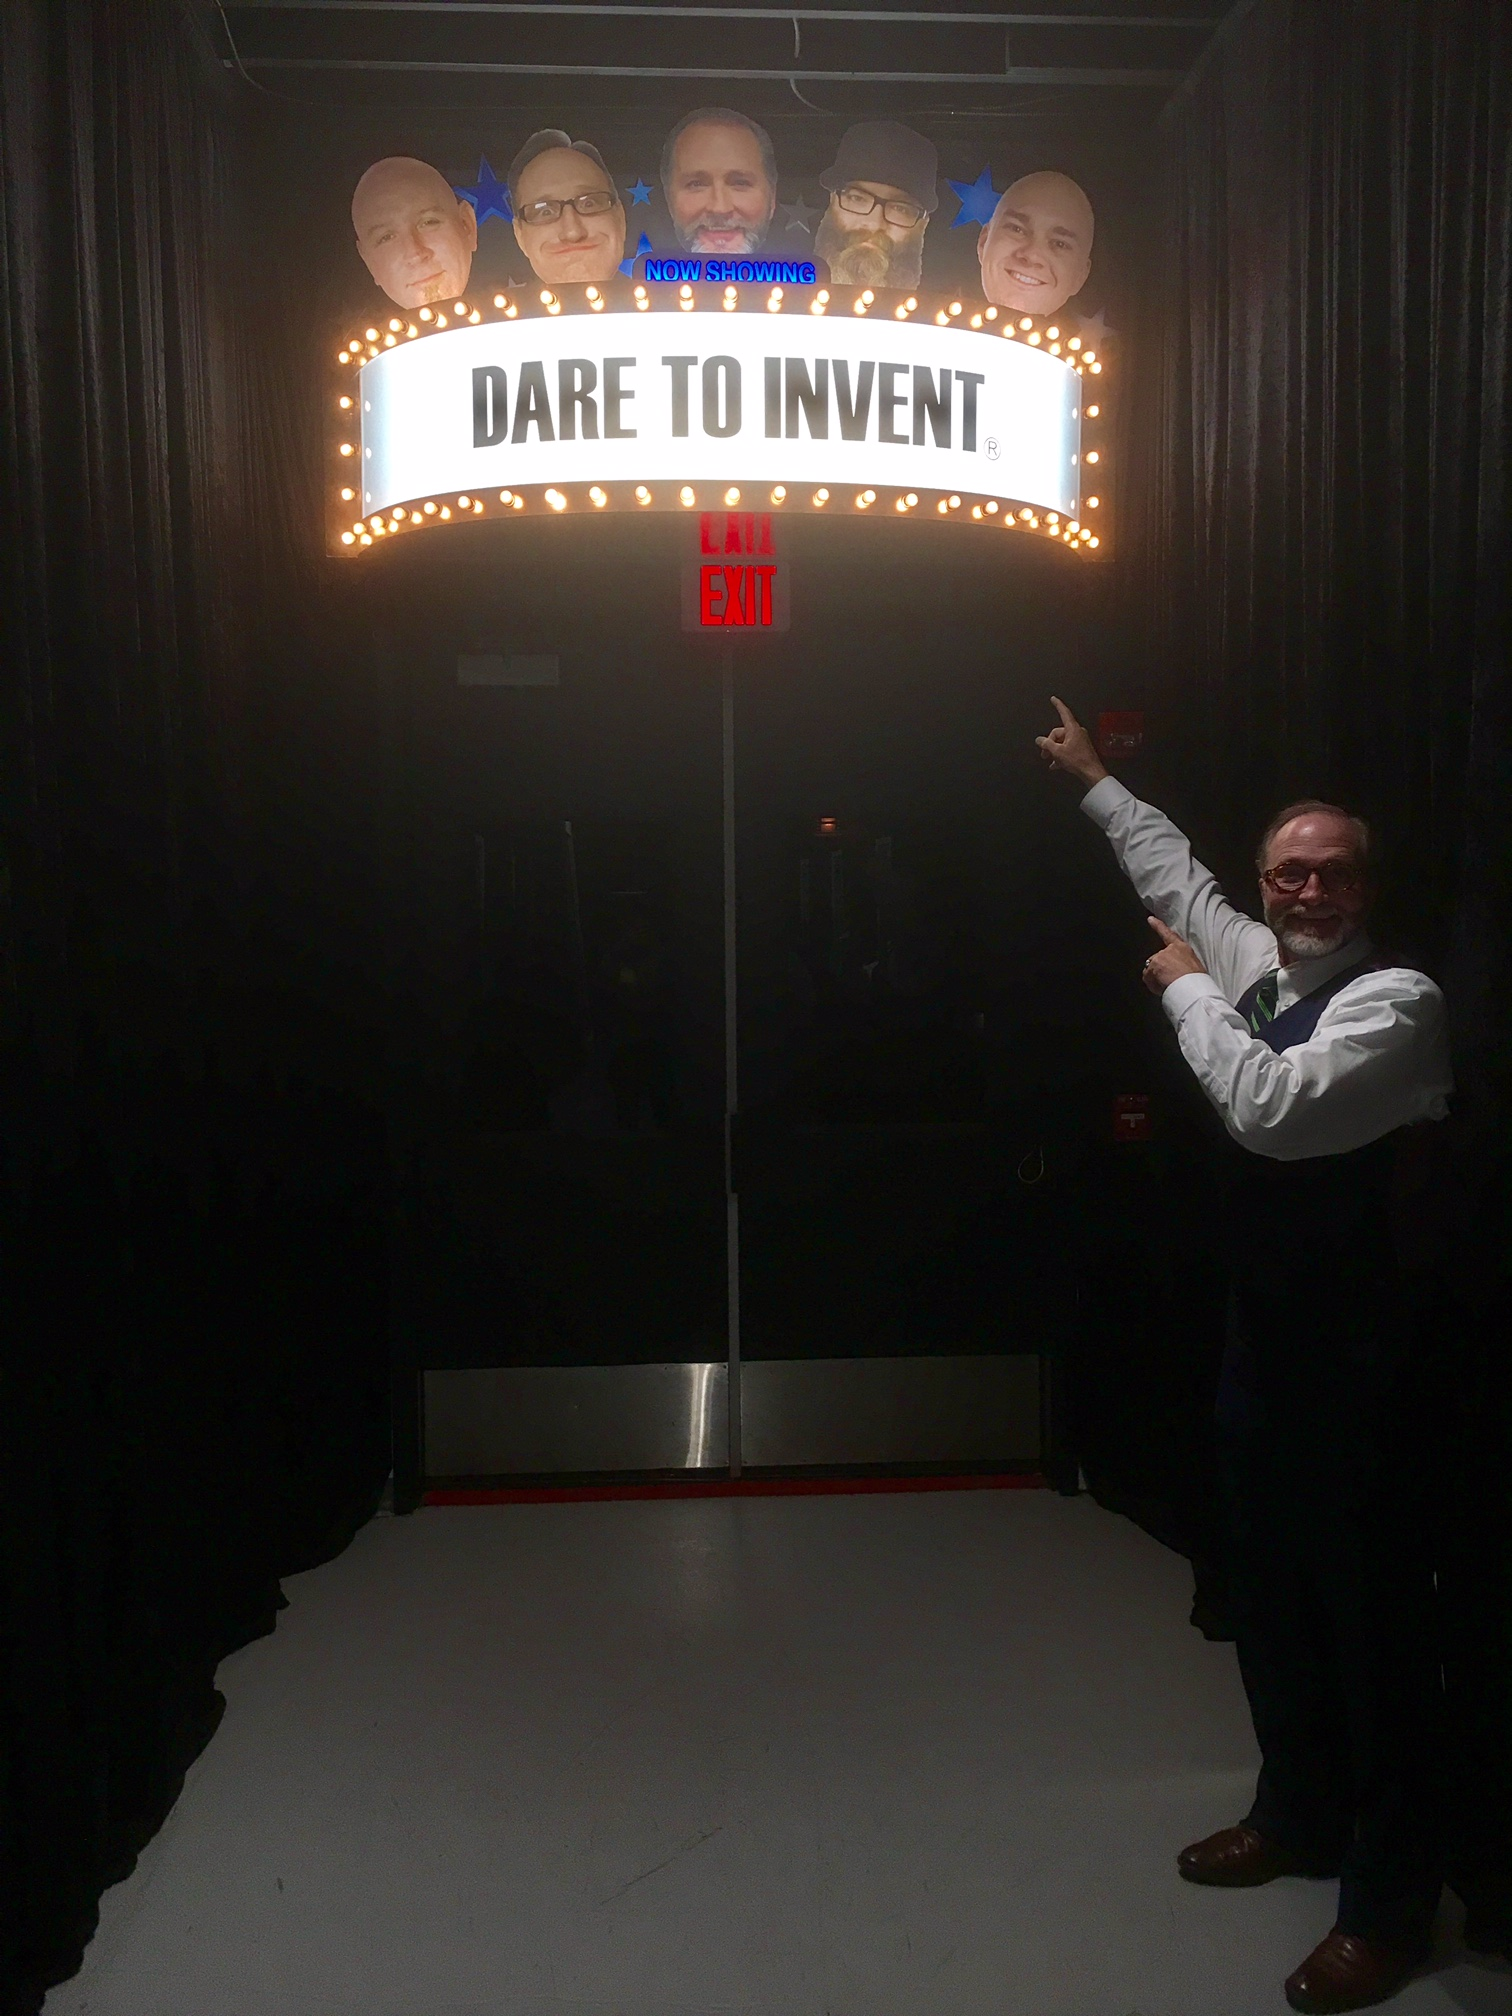 Mr. D with Theater Marquee